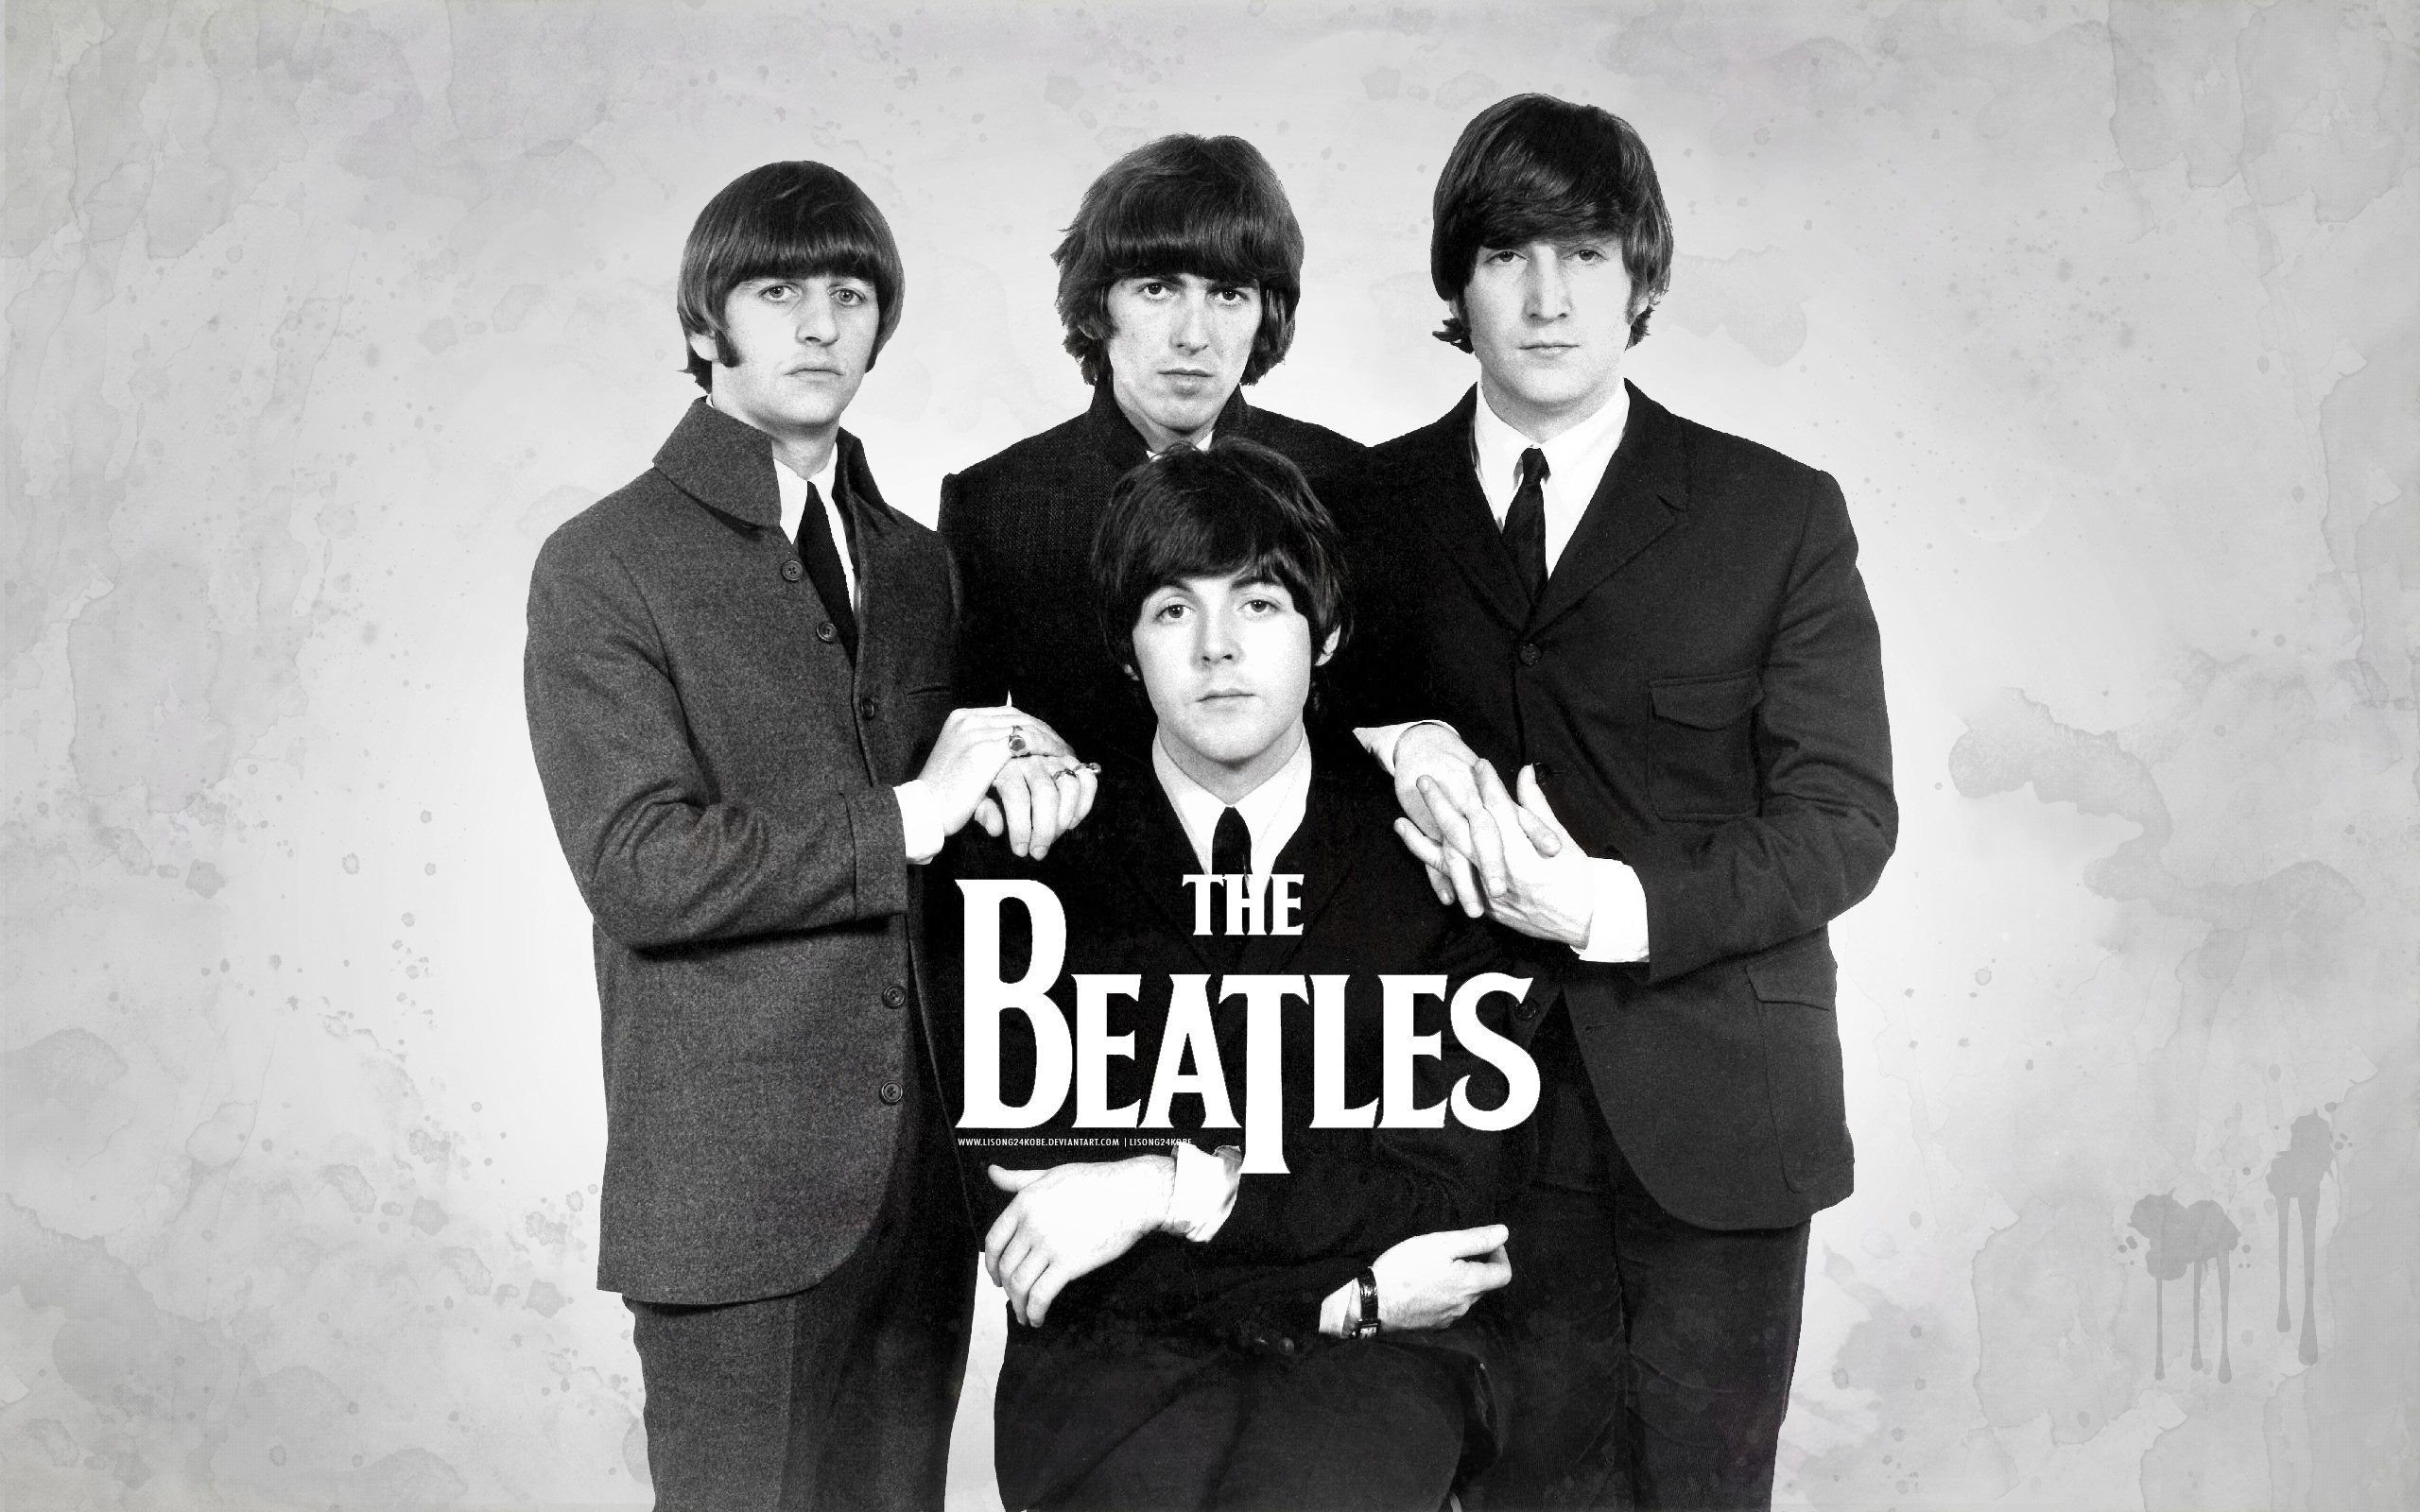 Beatles Wallpaper 1 Download Free Amazing Wallpapers For Desktop